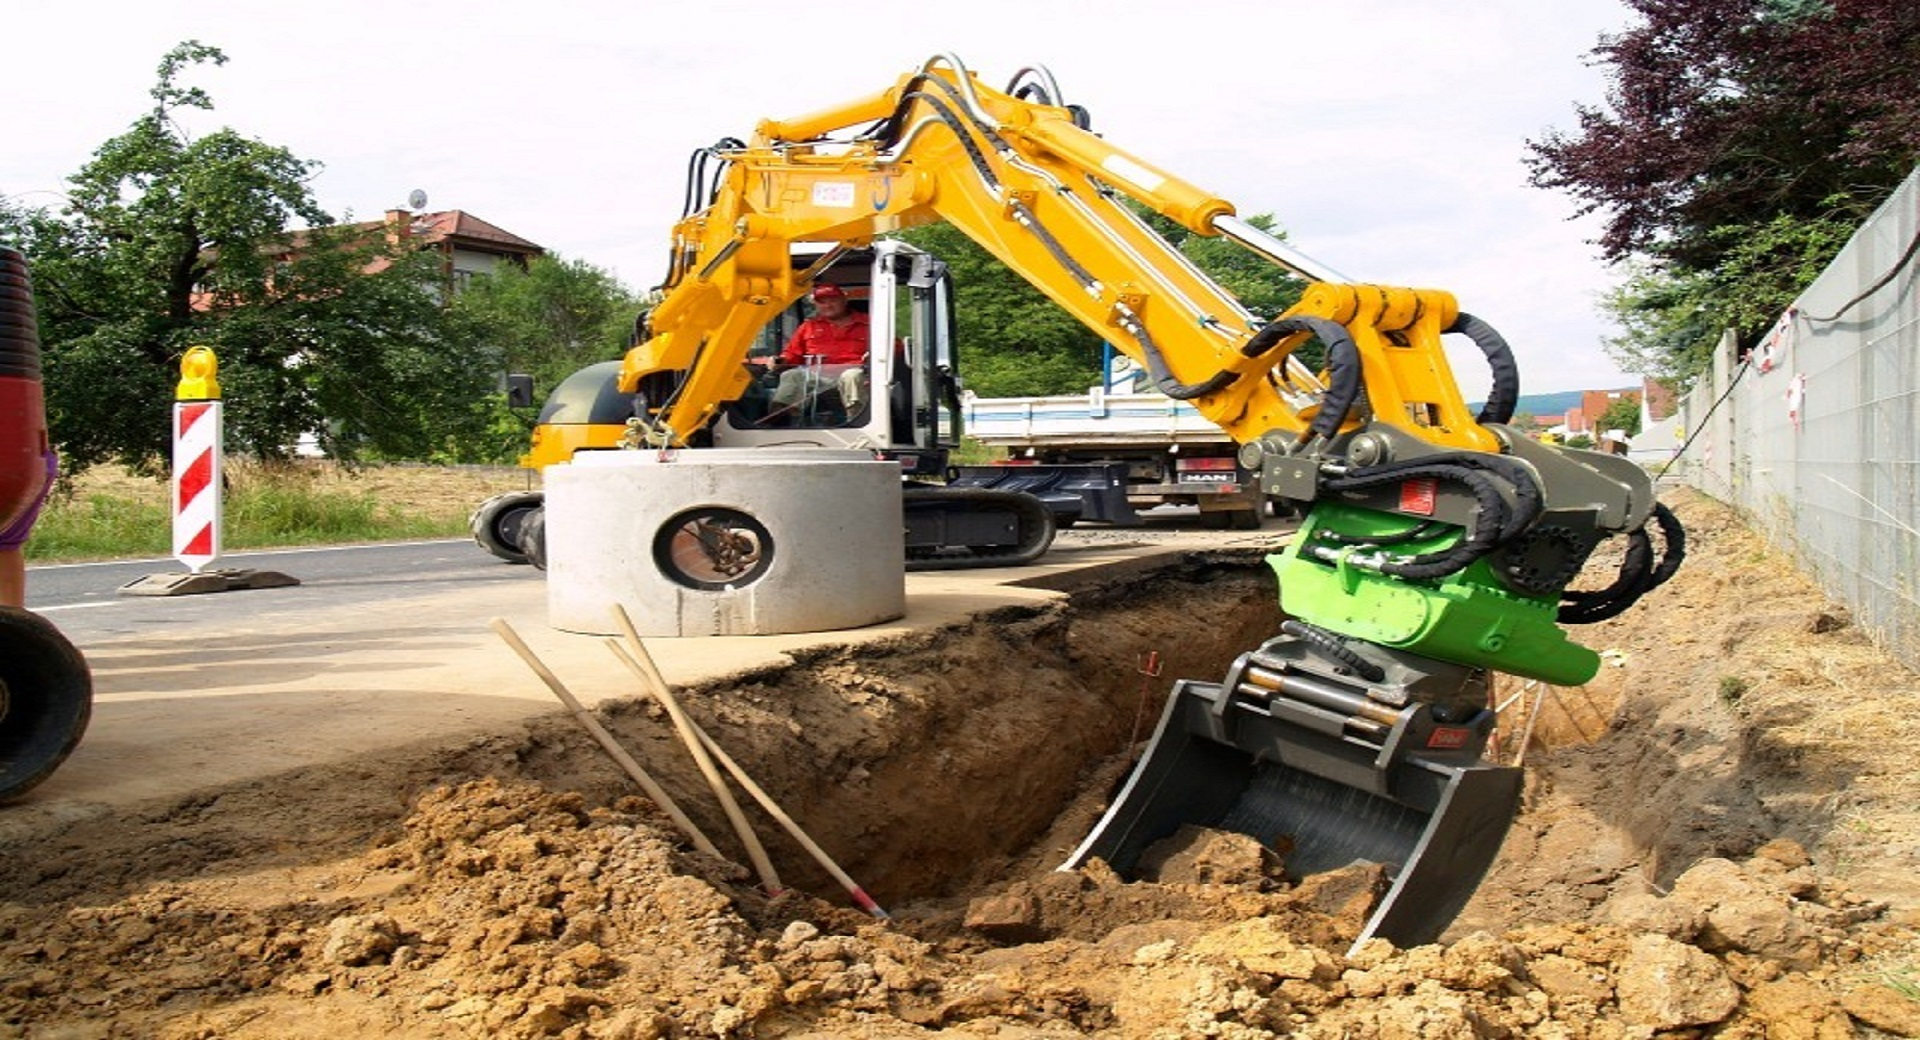 ATTACHMENTS FOR CONSTRUCTION MACHINES